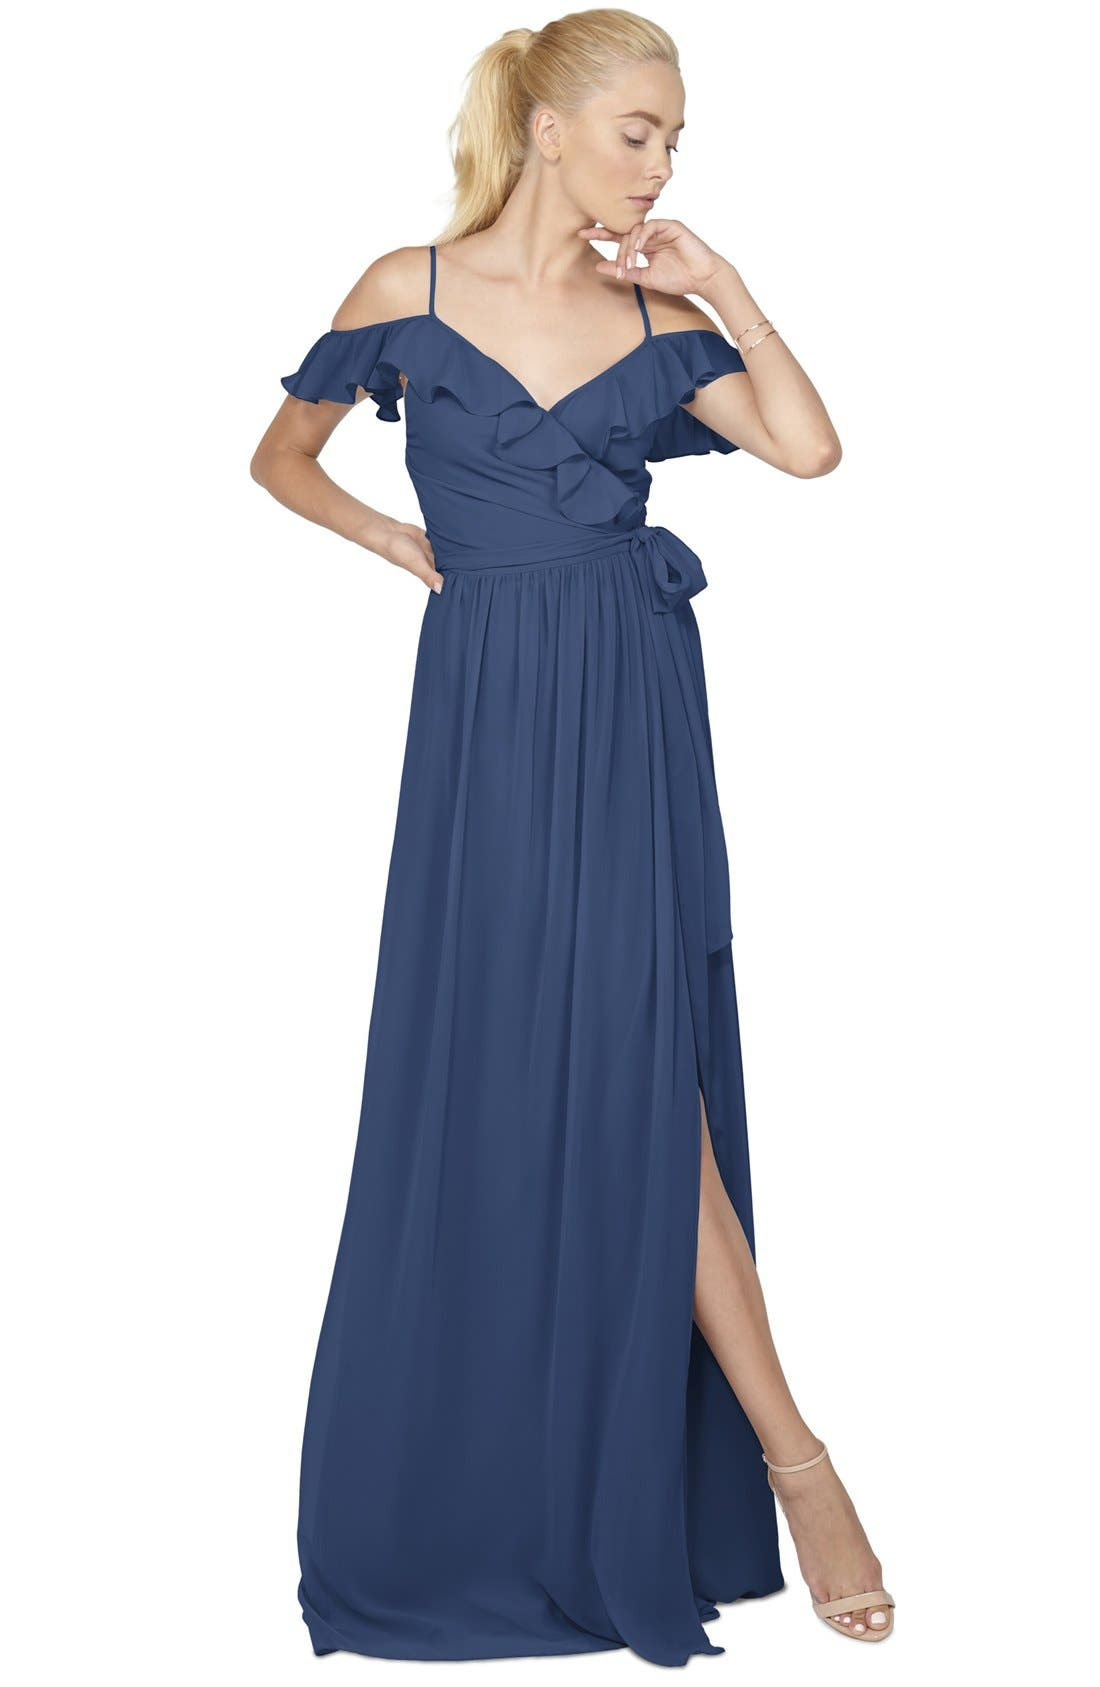 CEREMONY BY JOANNA AUGUST 'Portia' Off the Shoulder